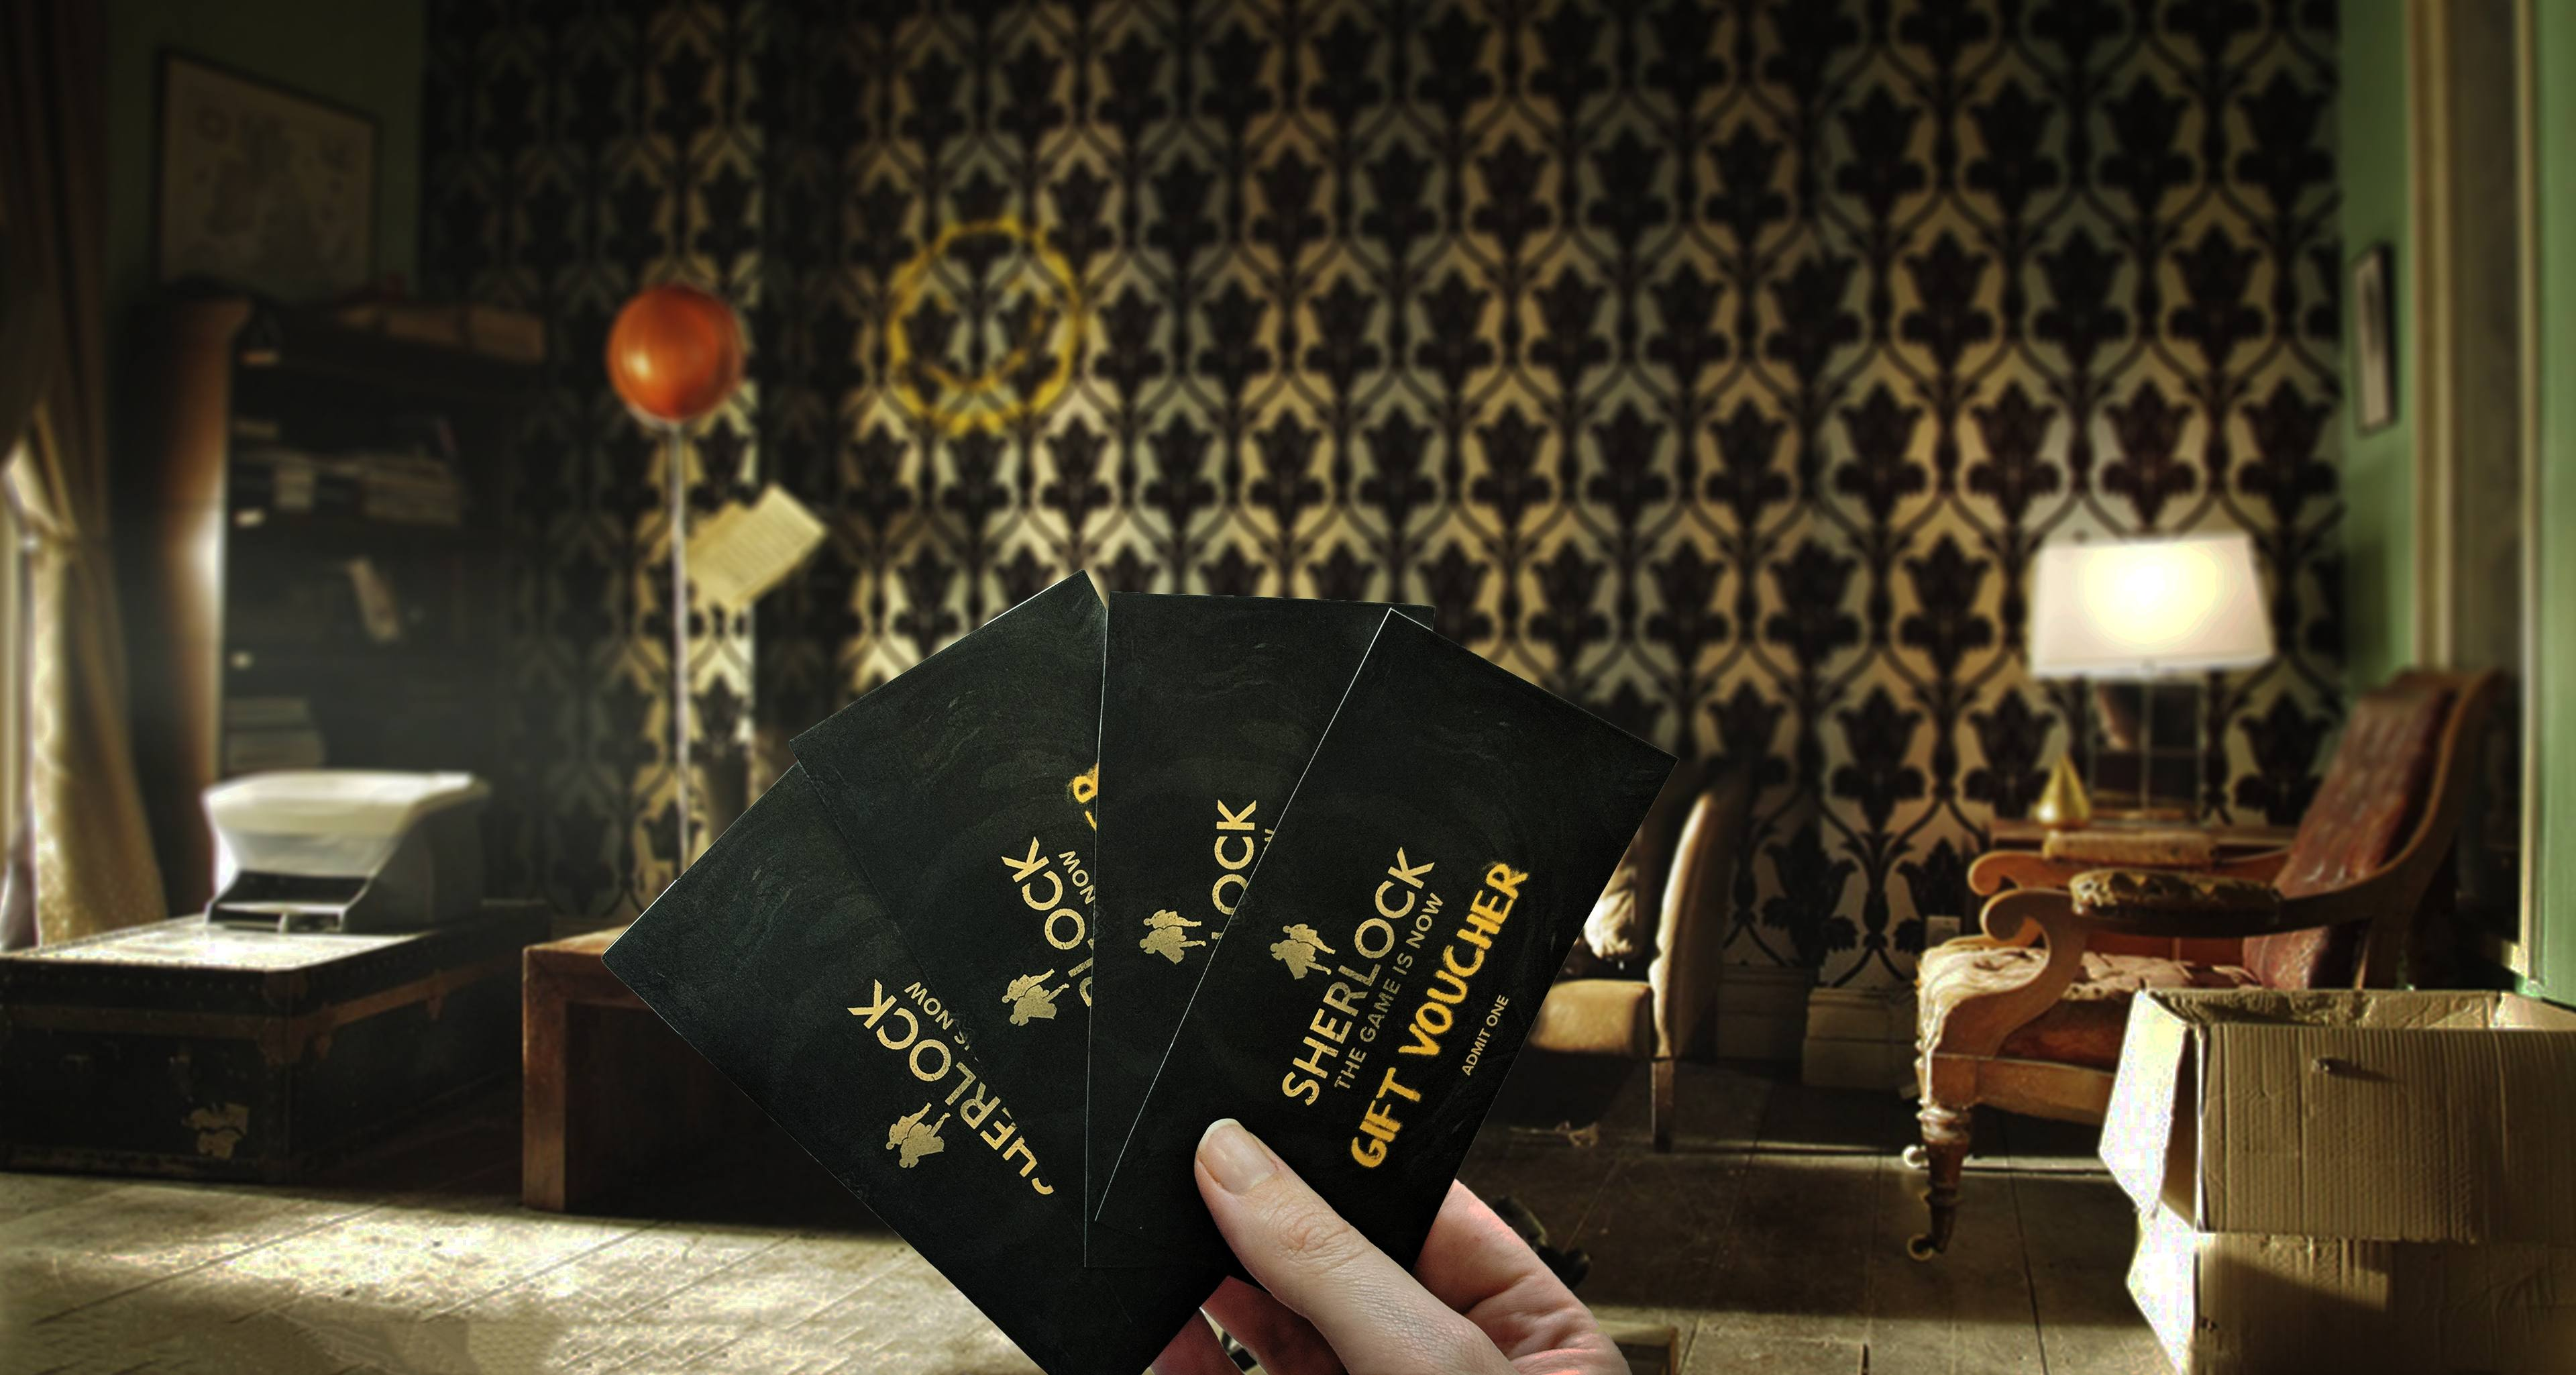 Sherlock: The Game Is Now Gift Voucher